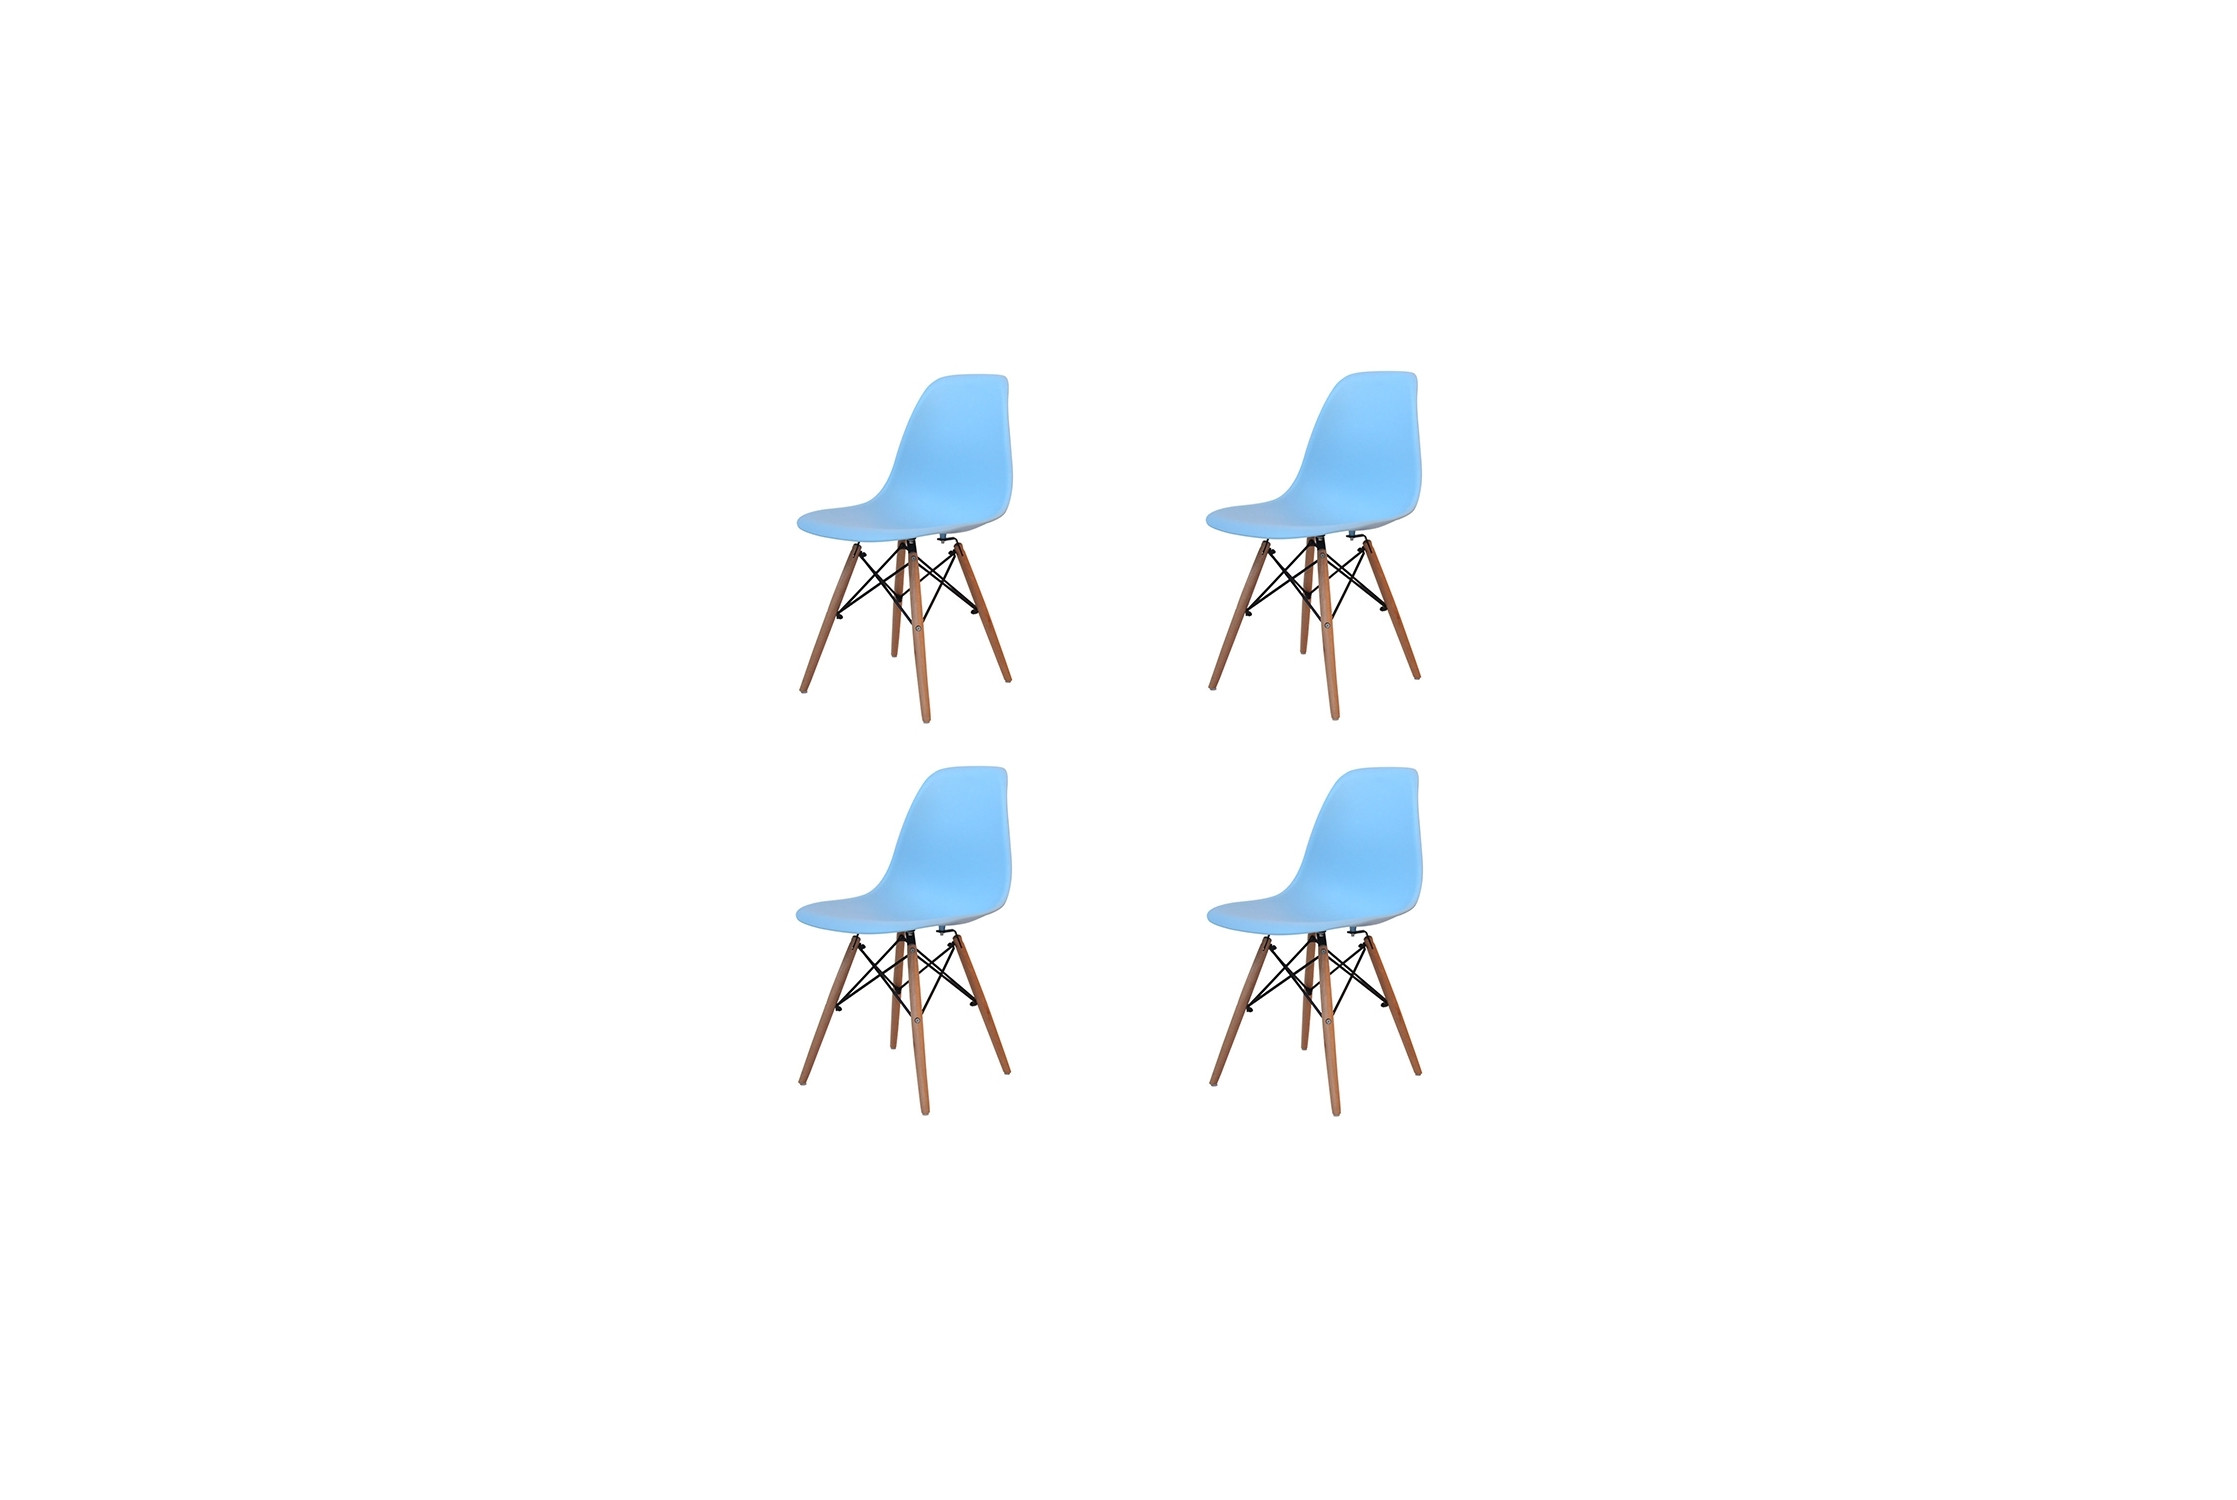 PACK 4 SILLAS TOWER WOOD AZUL CELESTE EXTRA QUALITY